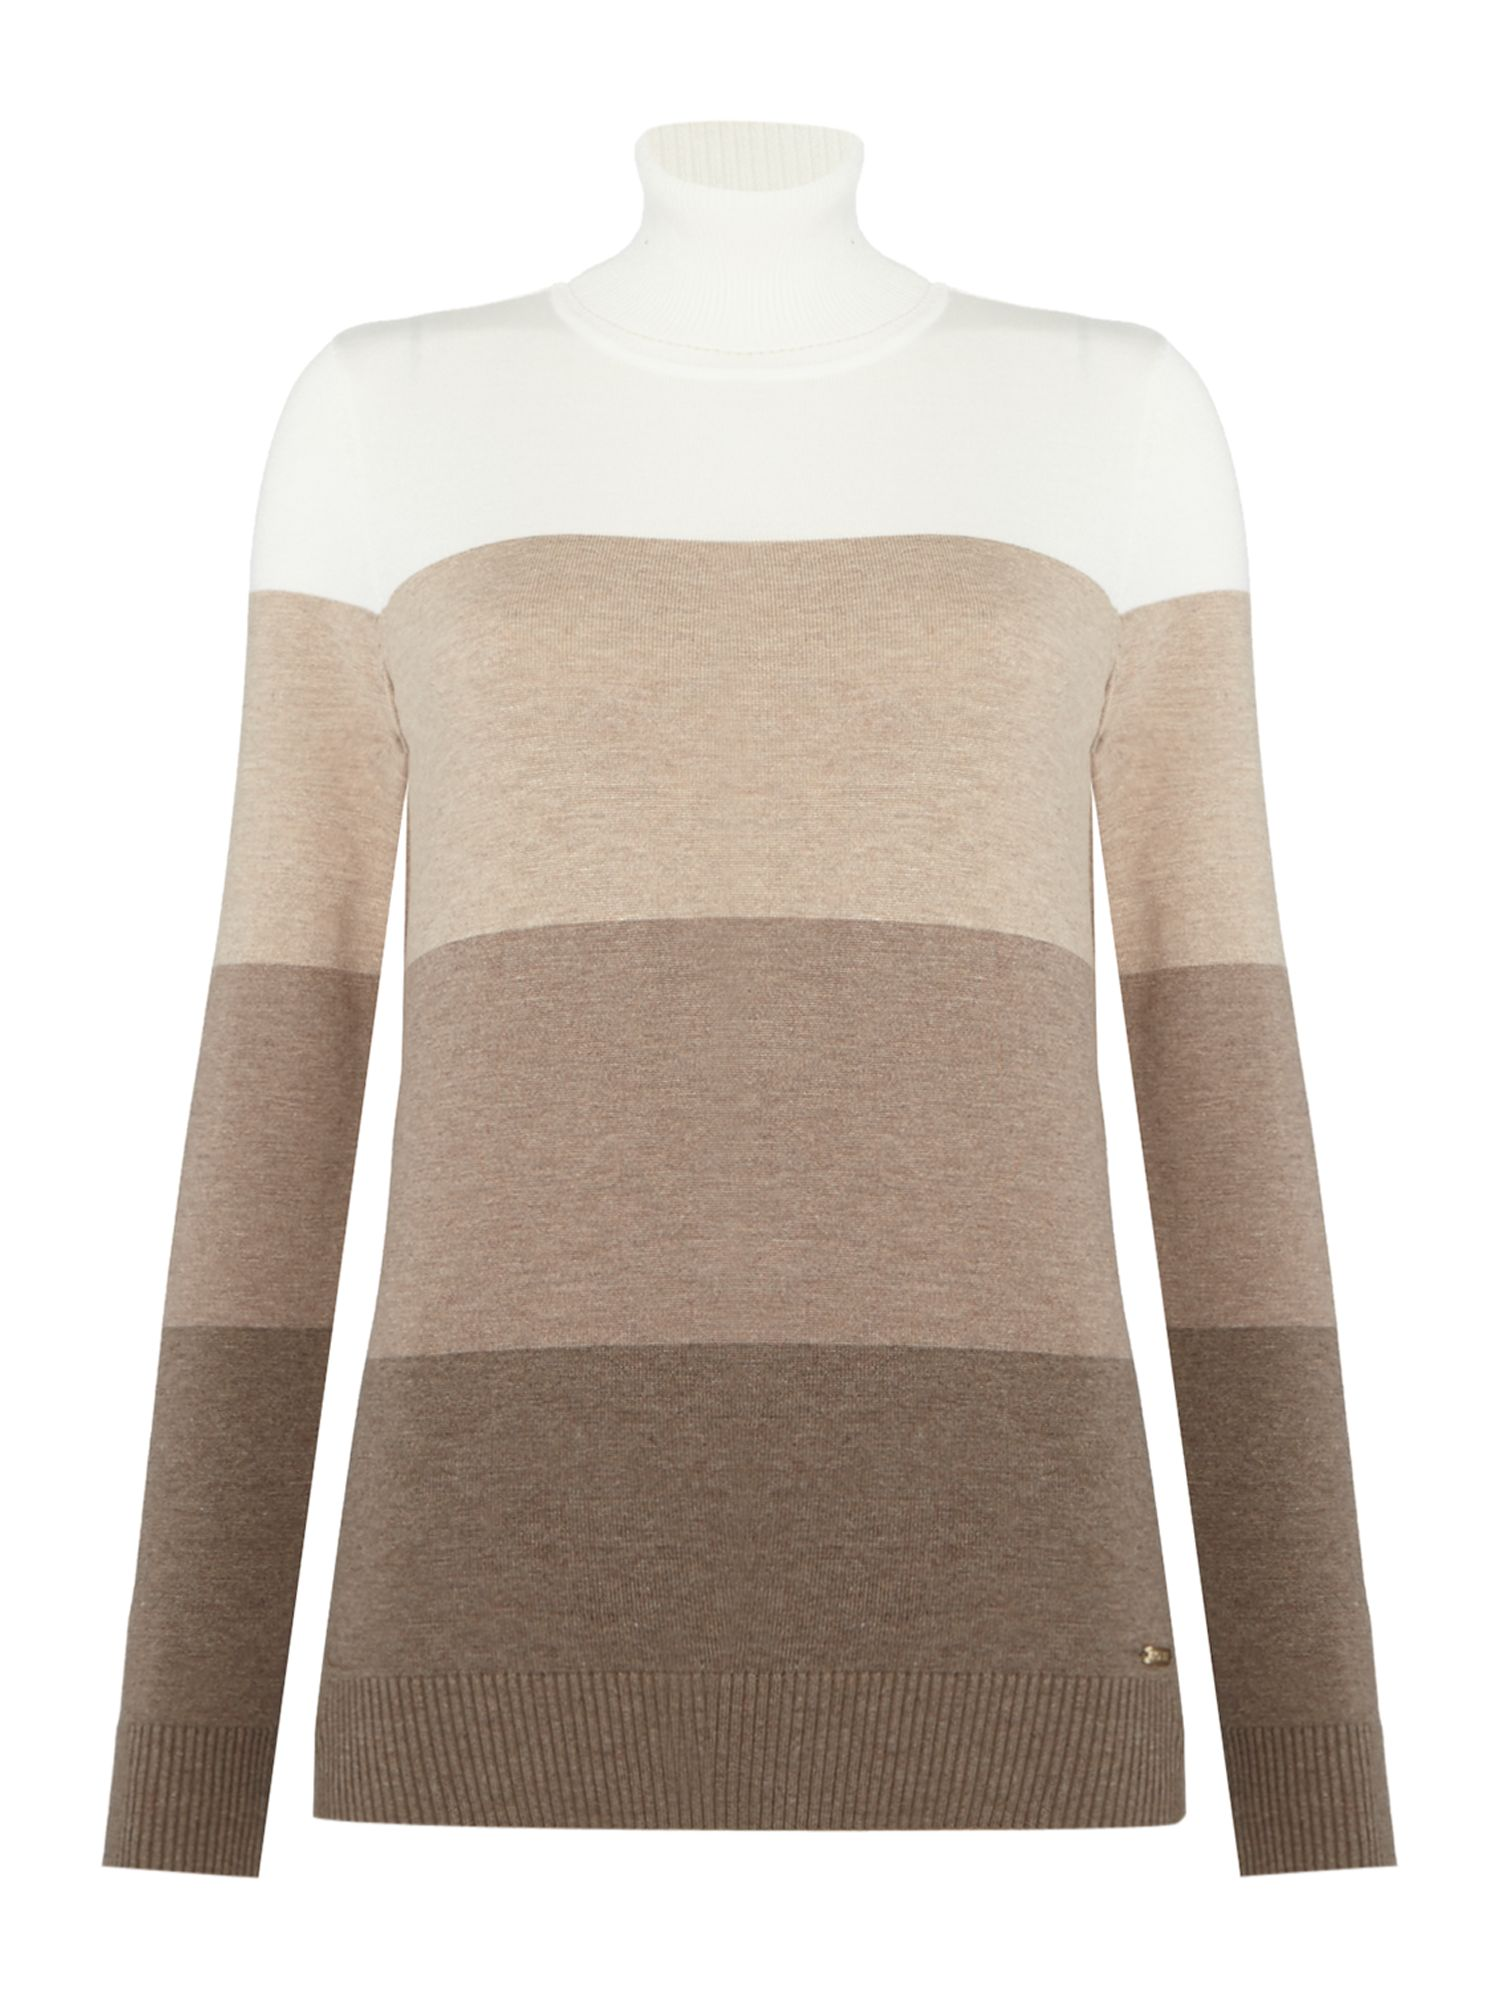 Episode Episode Wool Mix Knit Turtleneck Jumper, Multi-Coloured